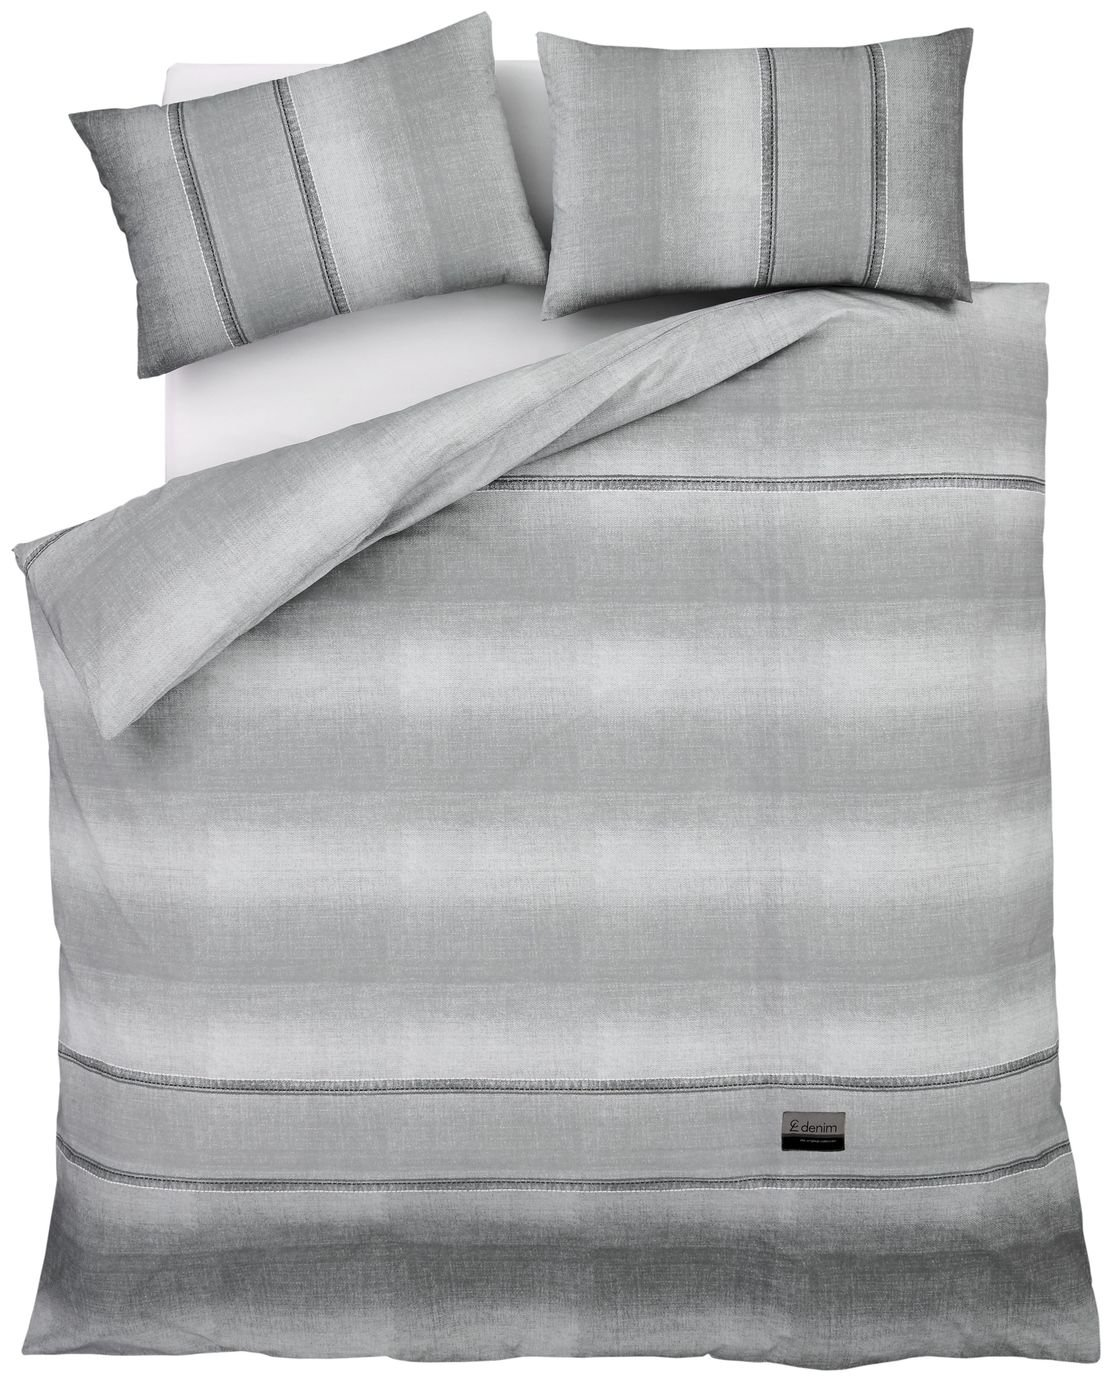 Catherine Lansfield Denim Grey Bedding Set – Double